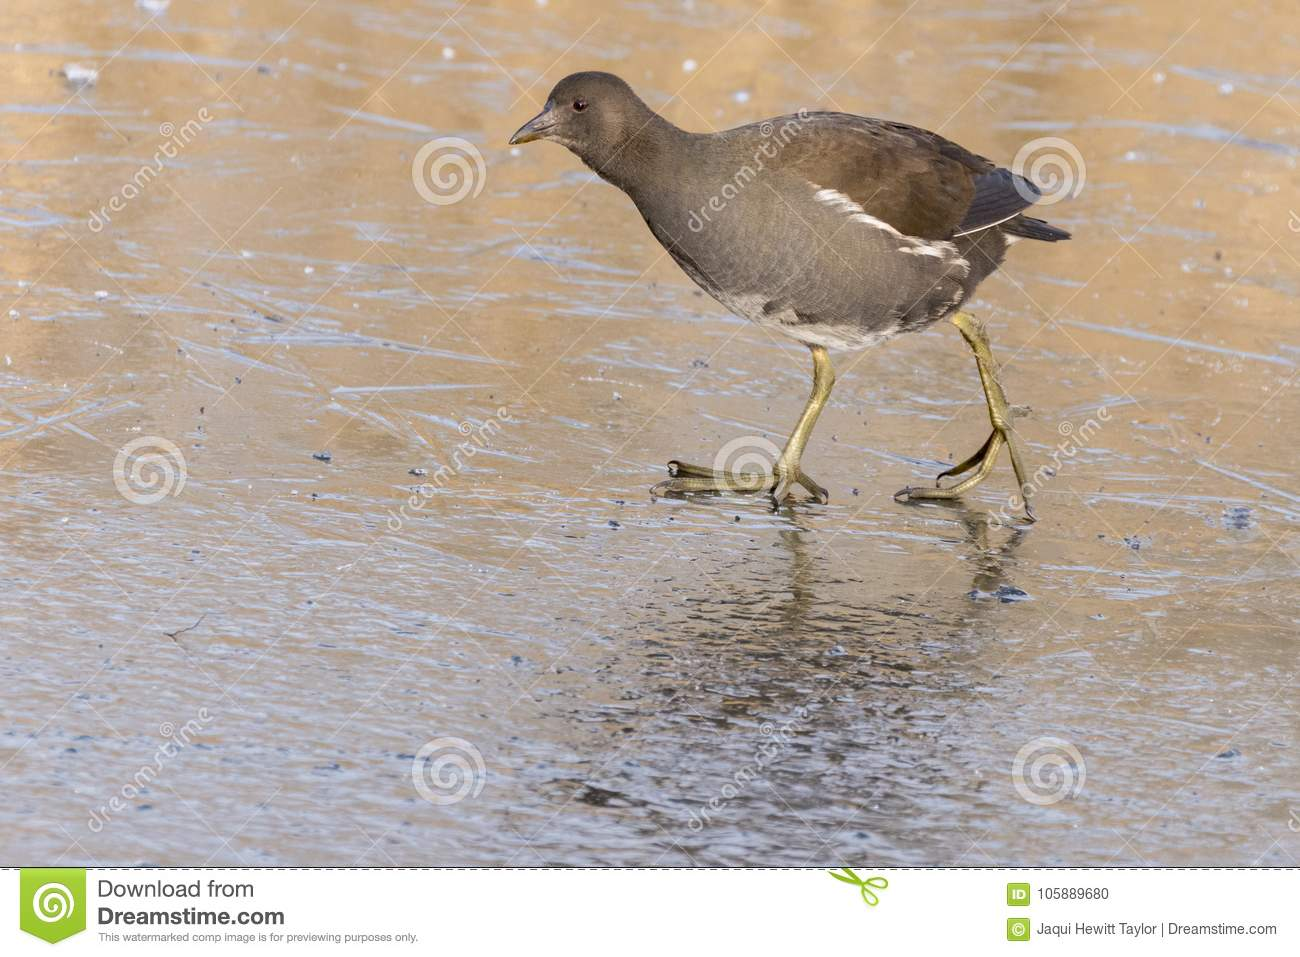 A juvenile moorhen walking on ice